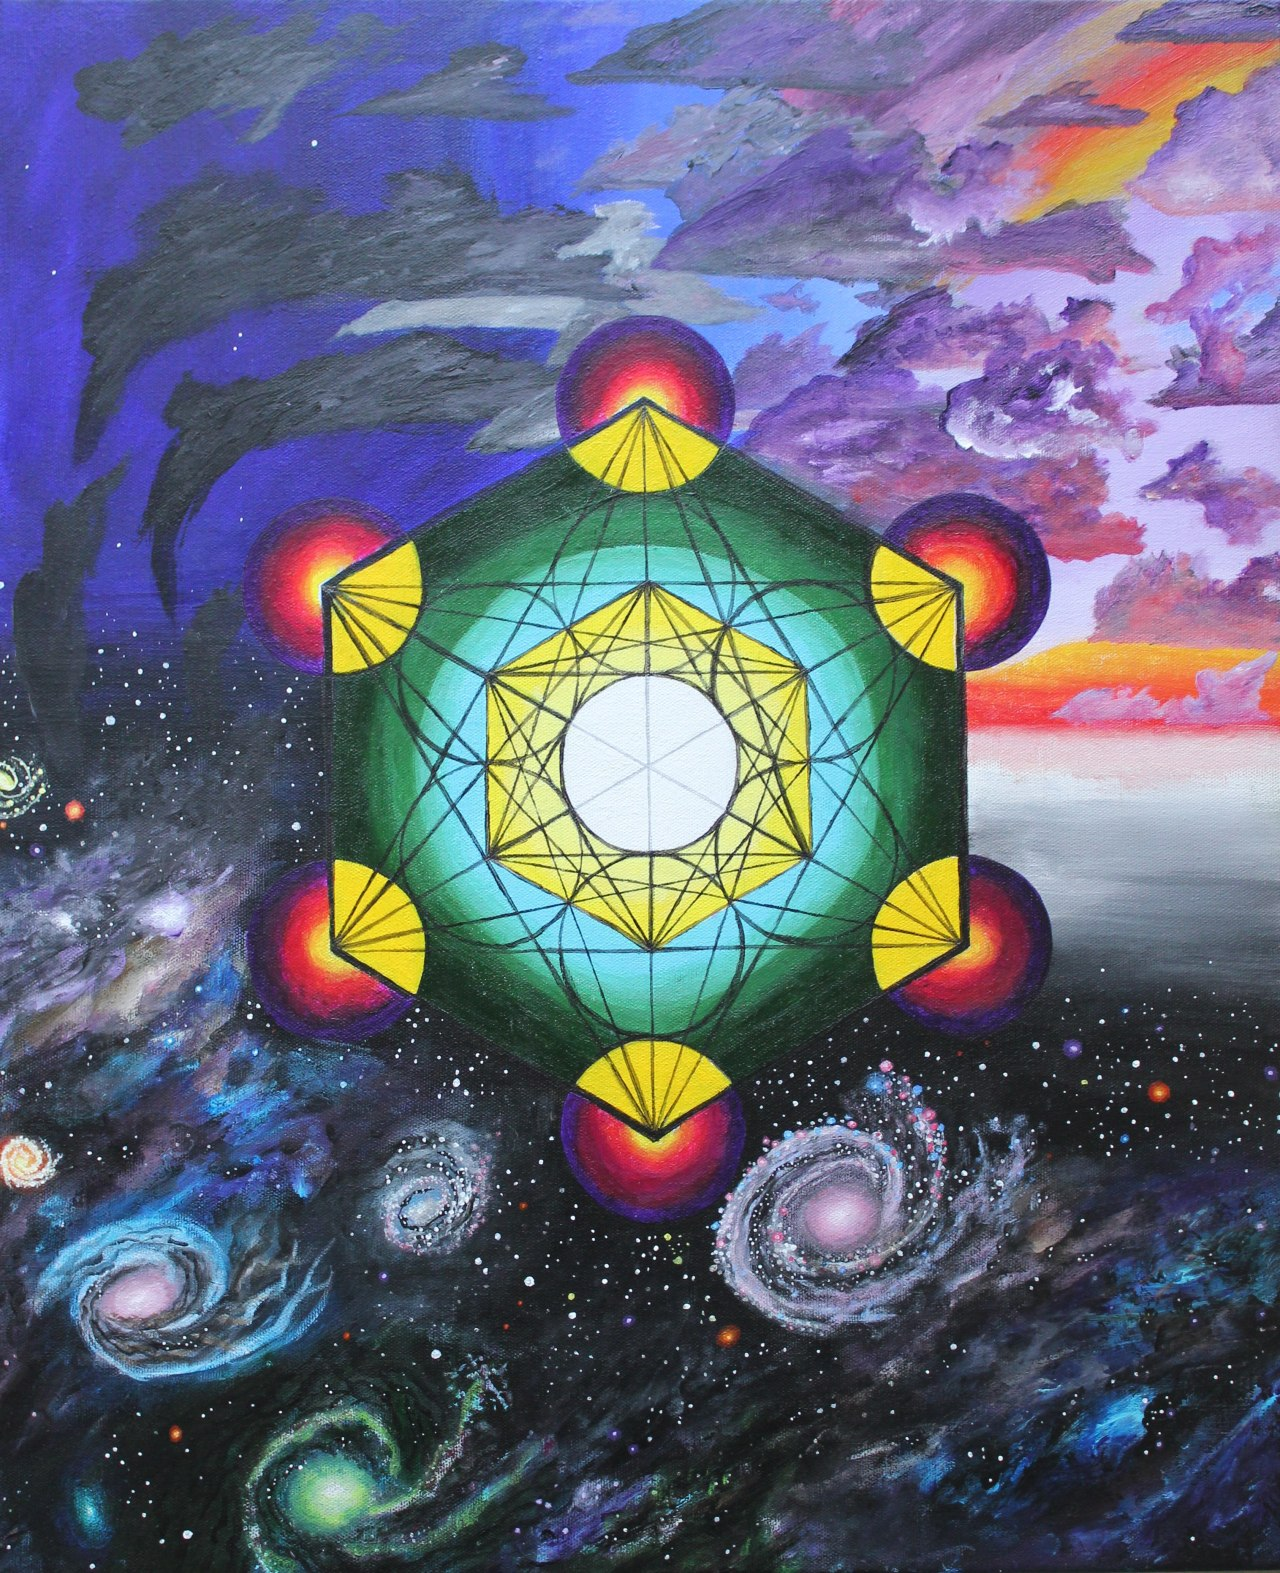 the-boundless:  Metatron's Cube, by Andrew Escudero. Acrylic on canvas.